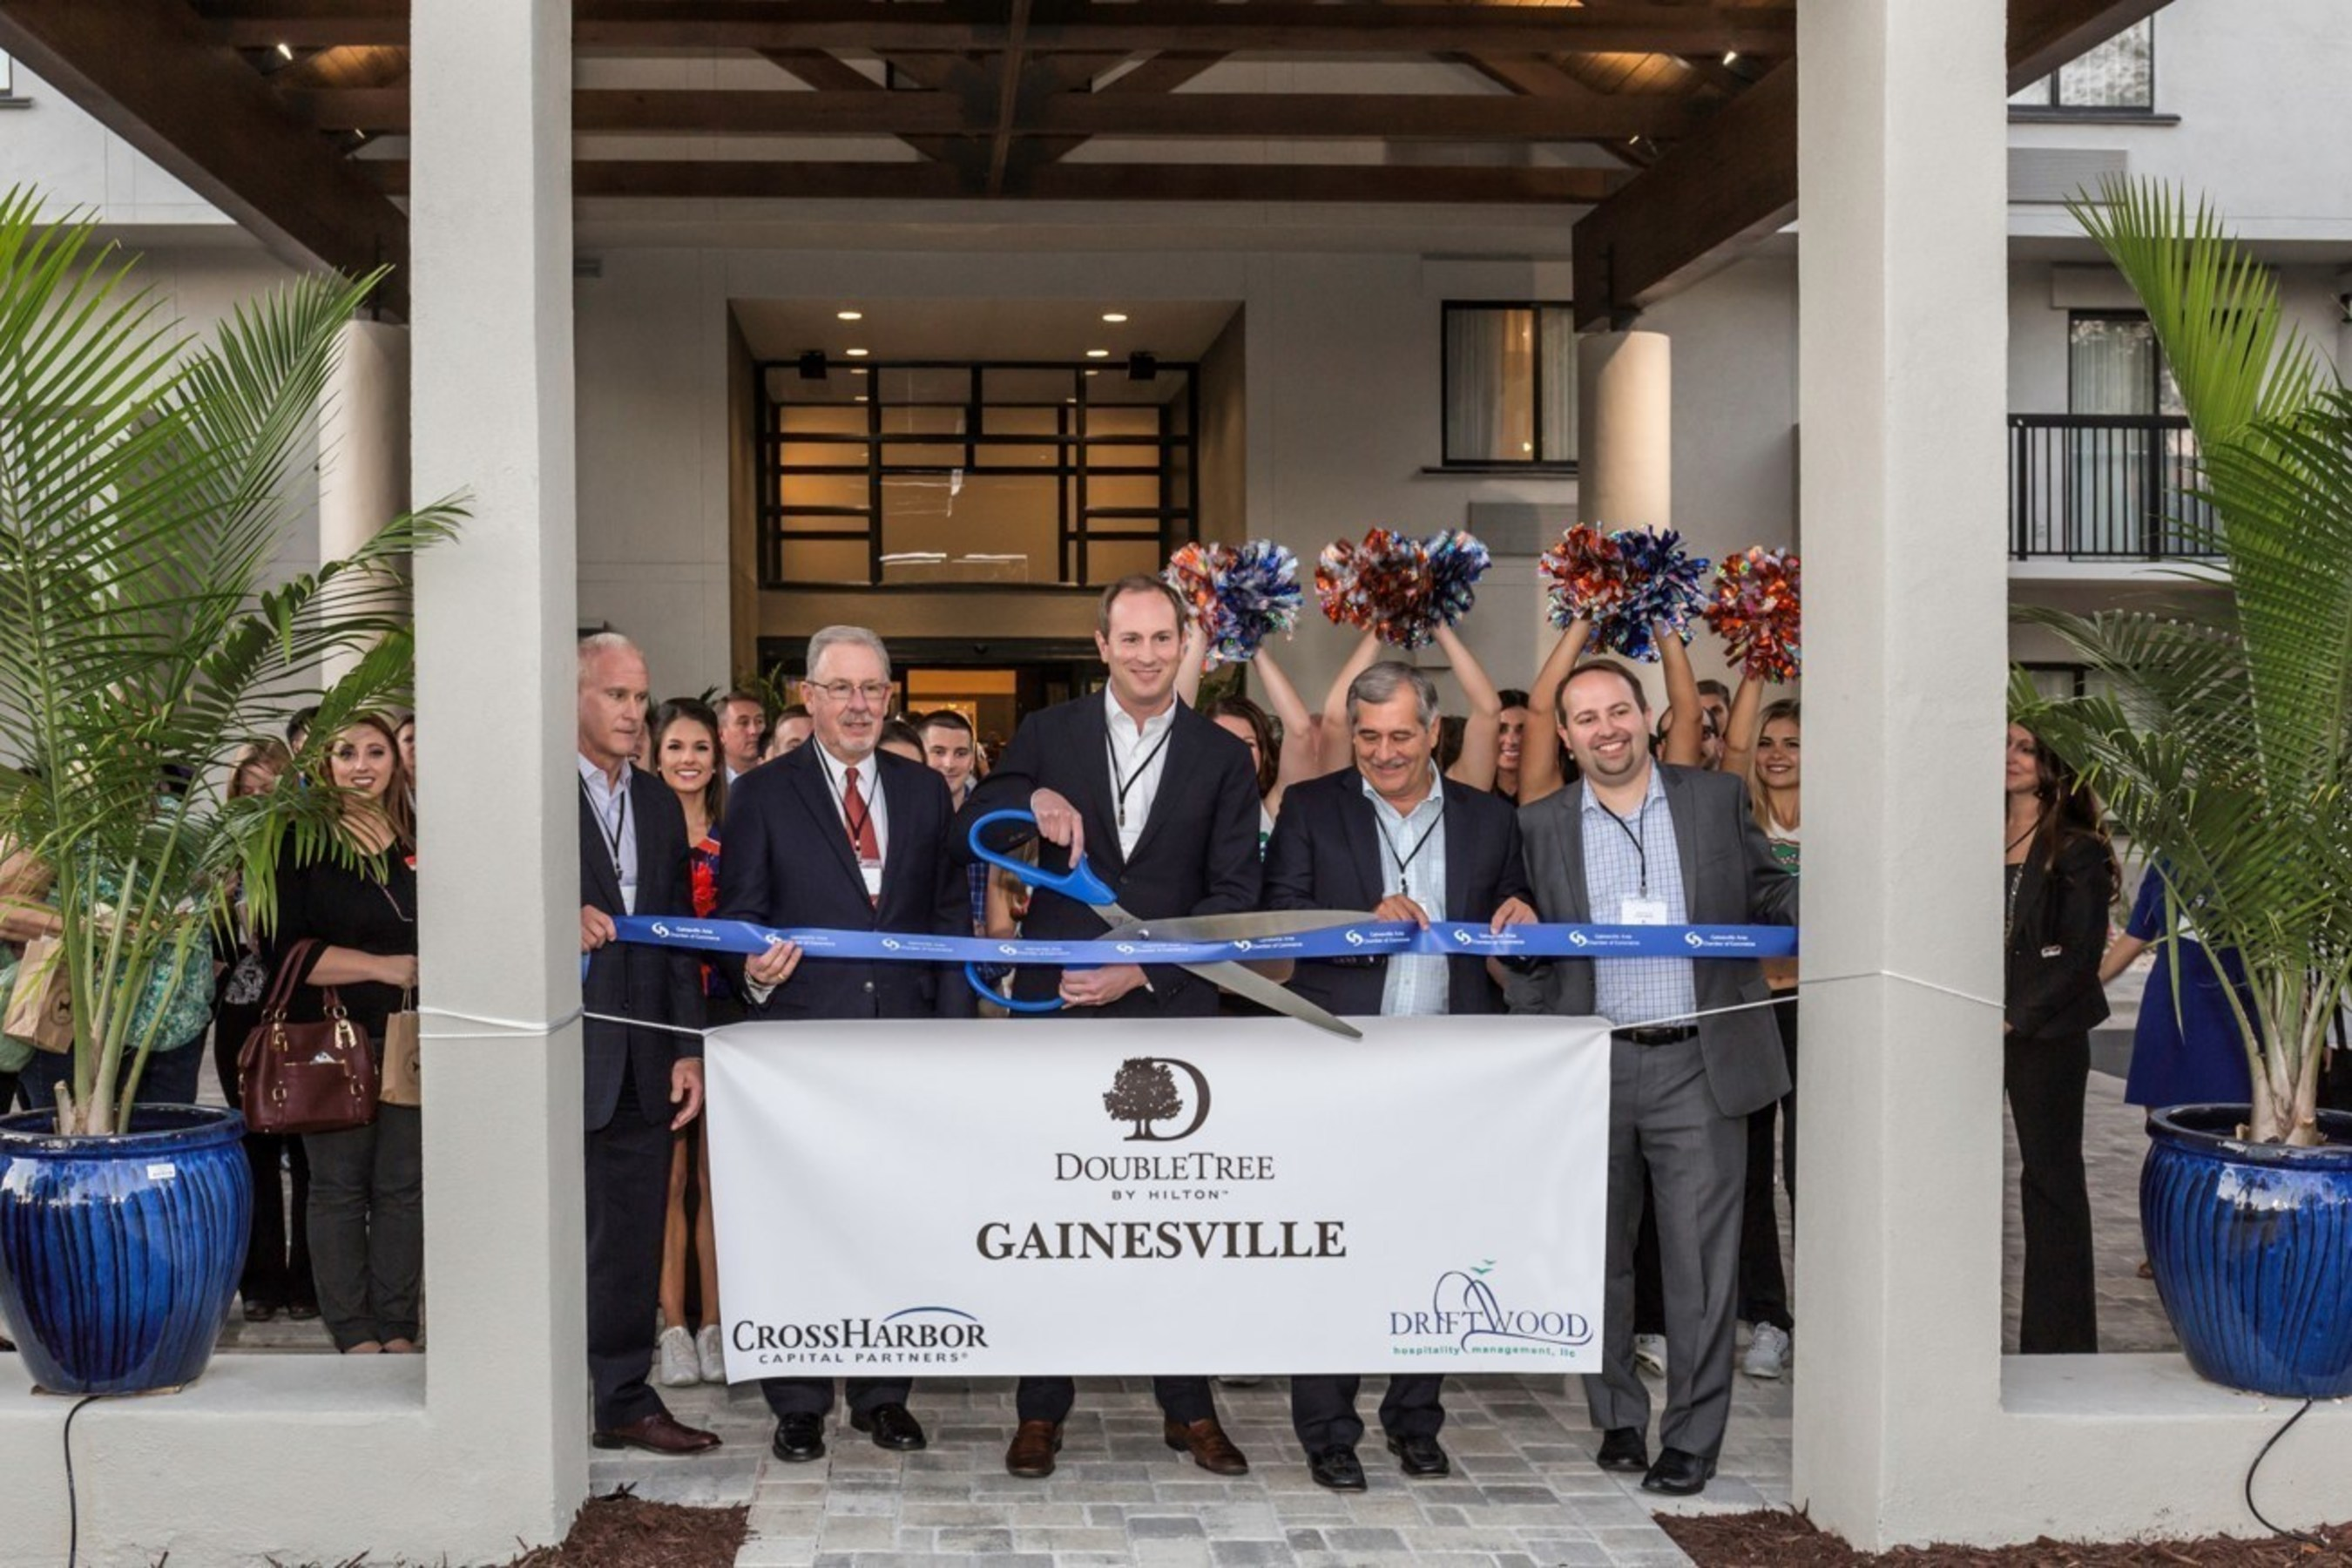 DoubleTree By Hilton Gainesville Ribbon Cutting